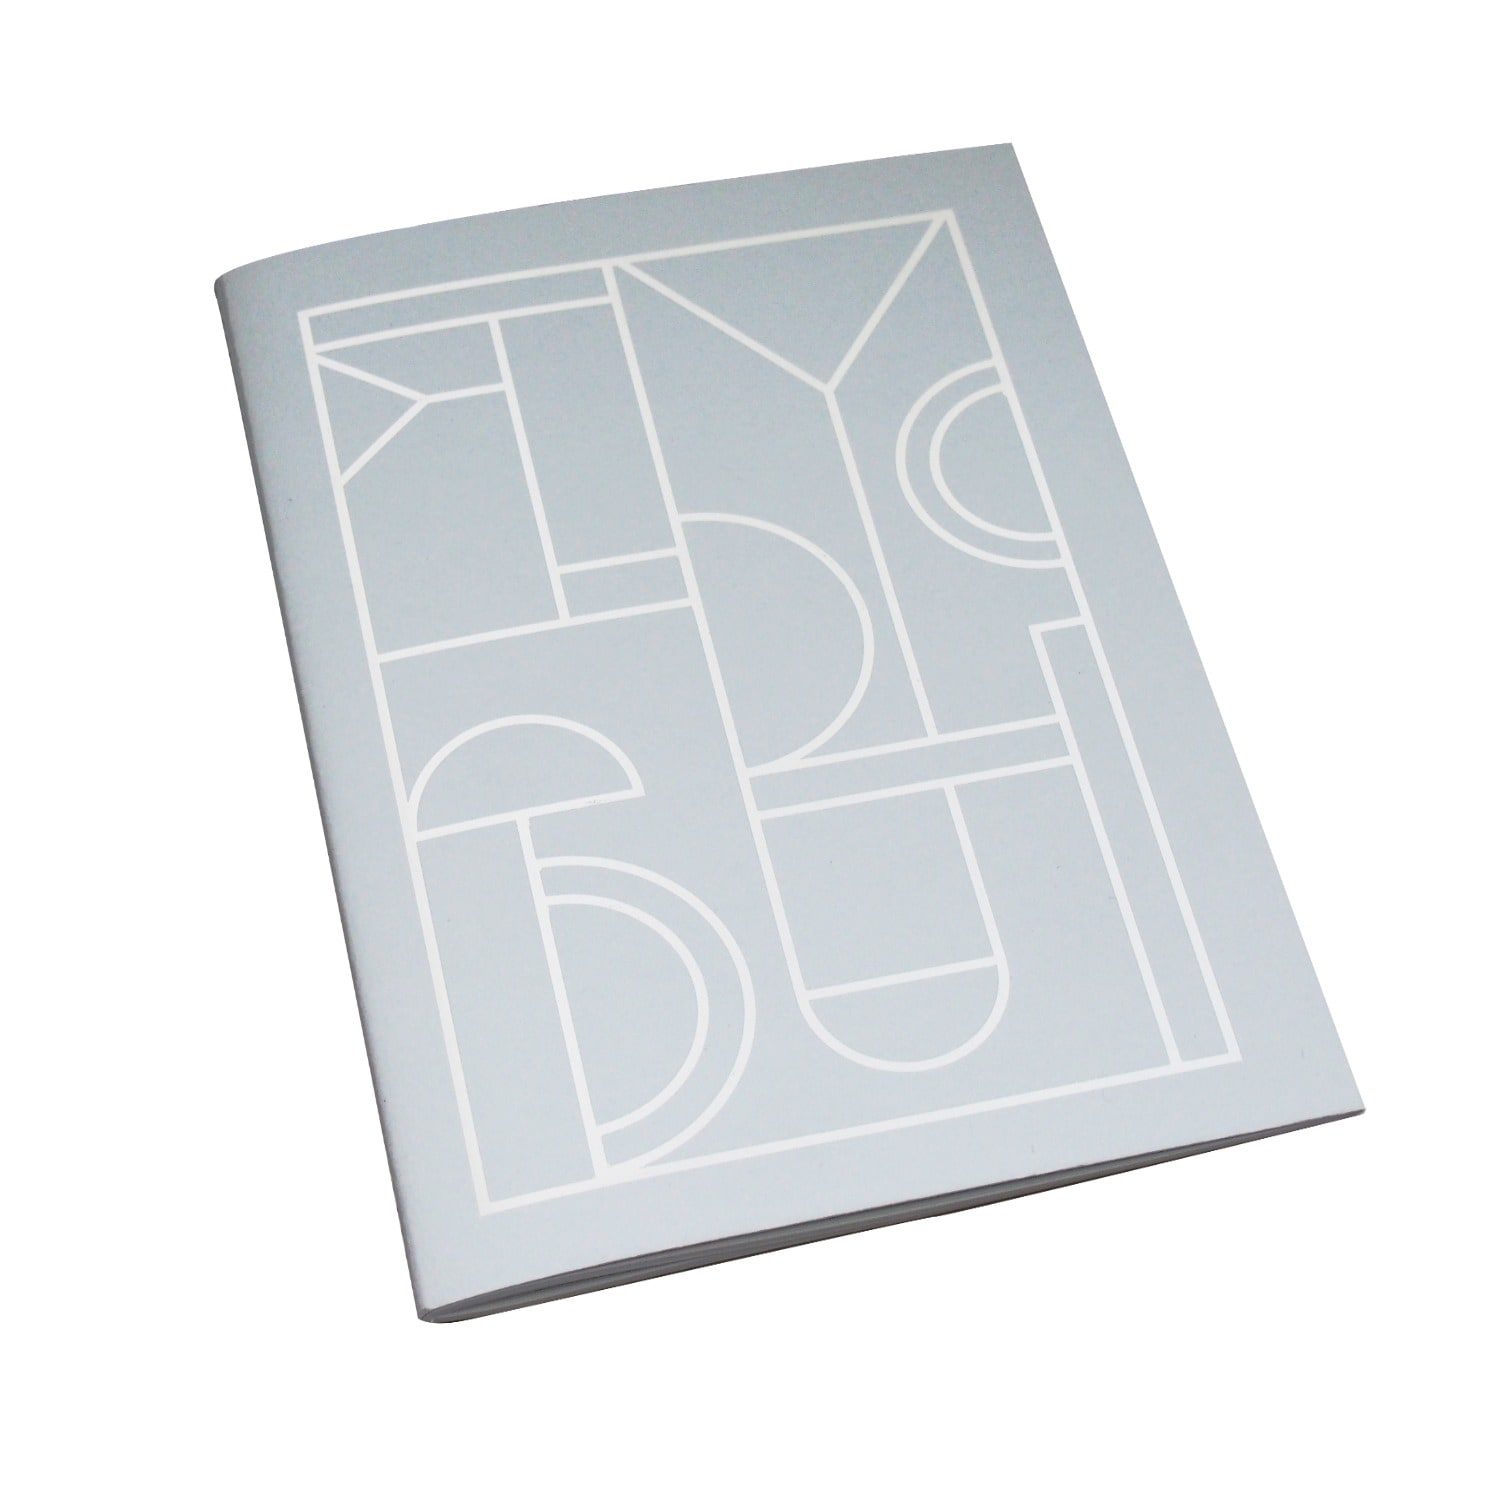 Special Offer Nylon Sky – Foil Printed Notebook A5 Grey Before Special Offer Ends